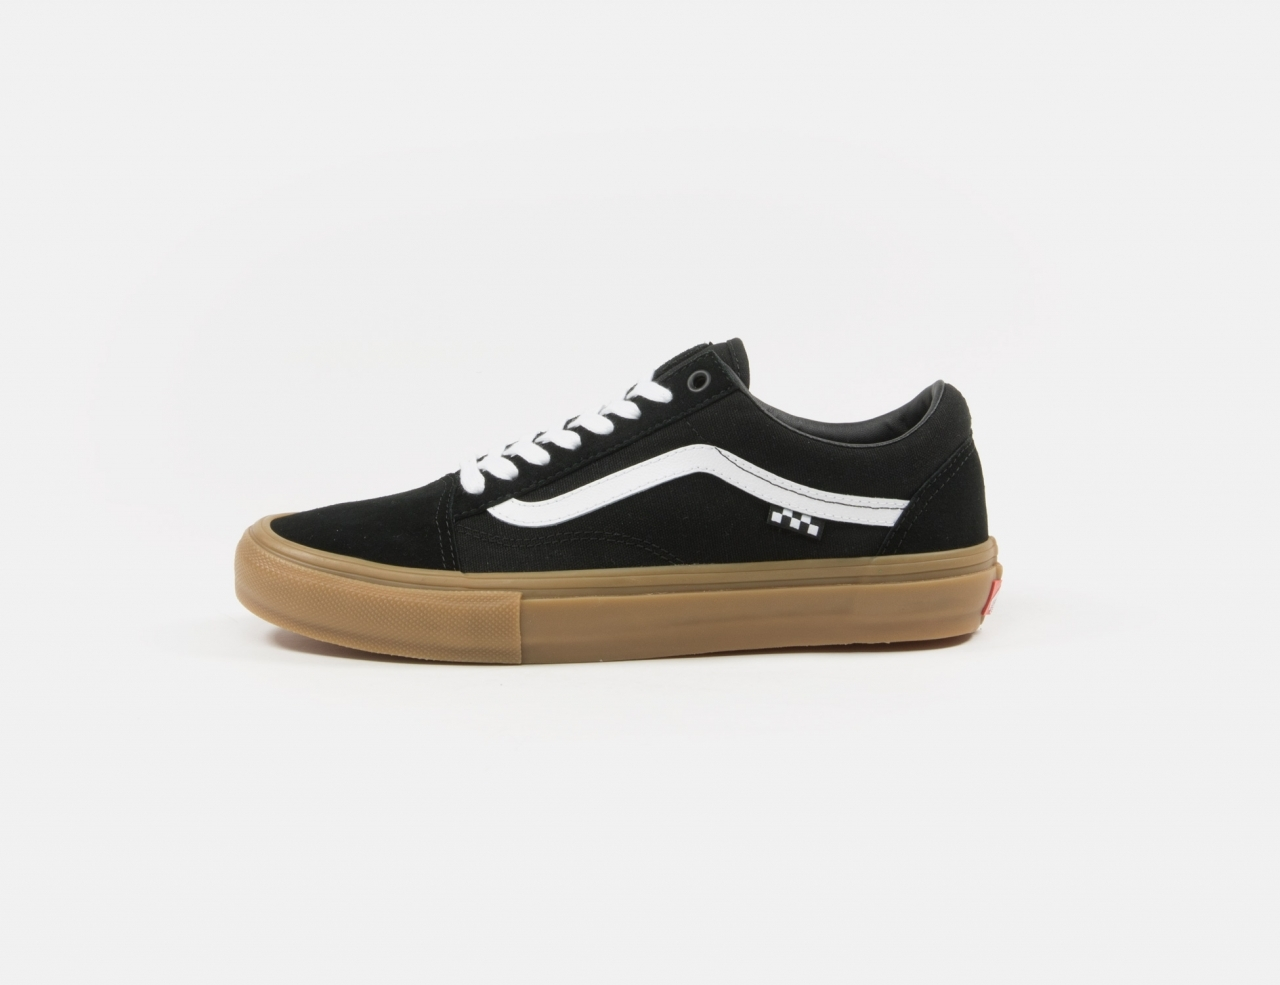 VANS Skate Old Skool Sneaker - Black / Gum